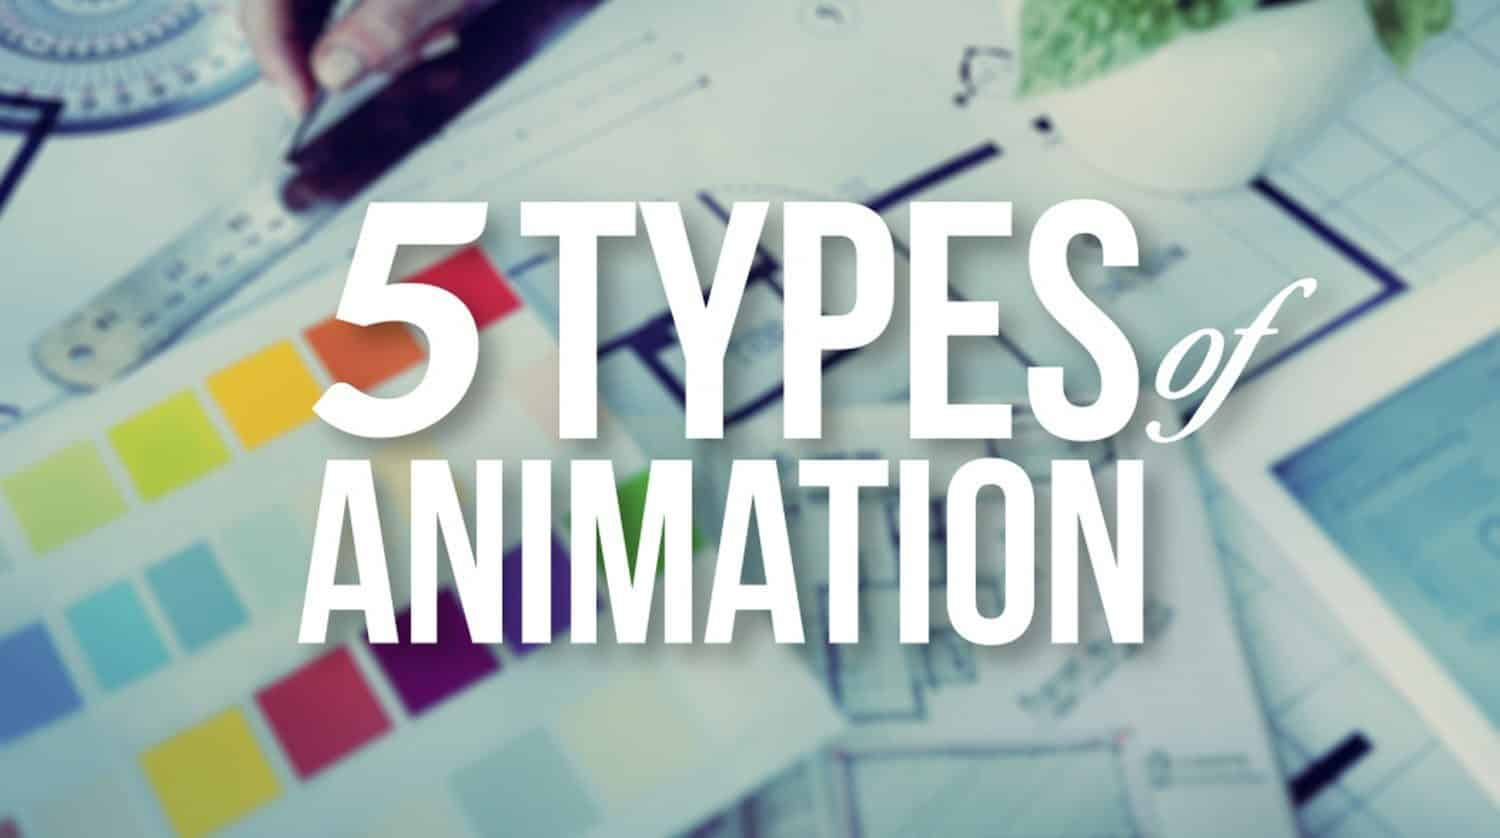 The 5 Types Of Animation – A Beginner's Guide